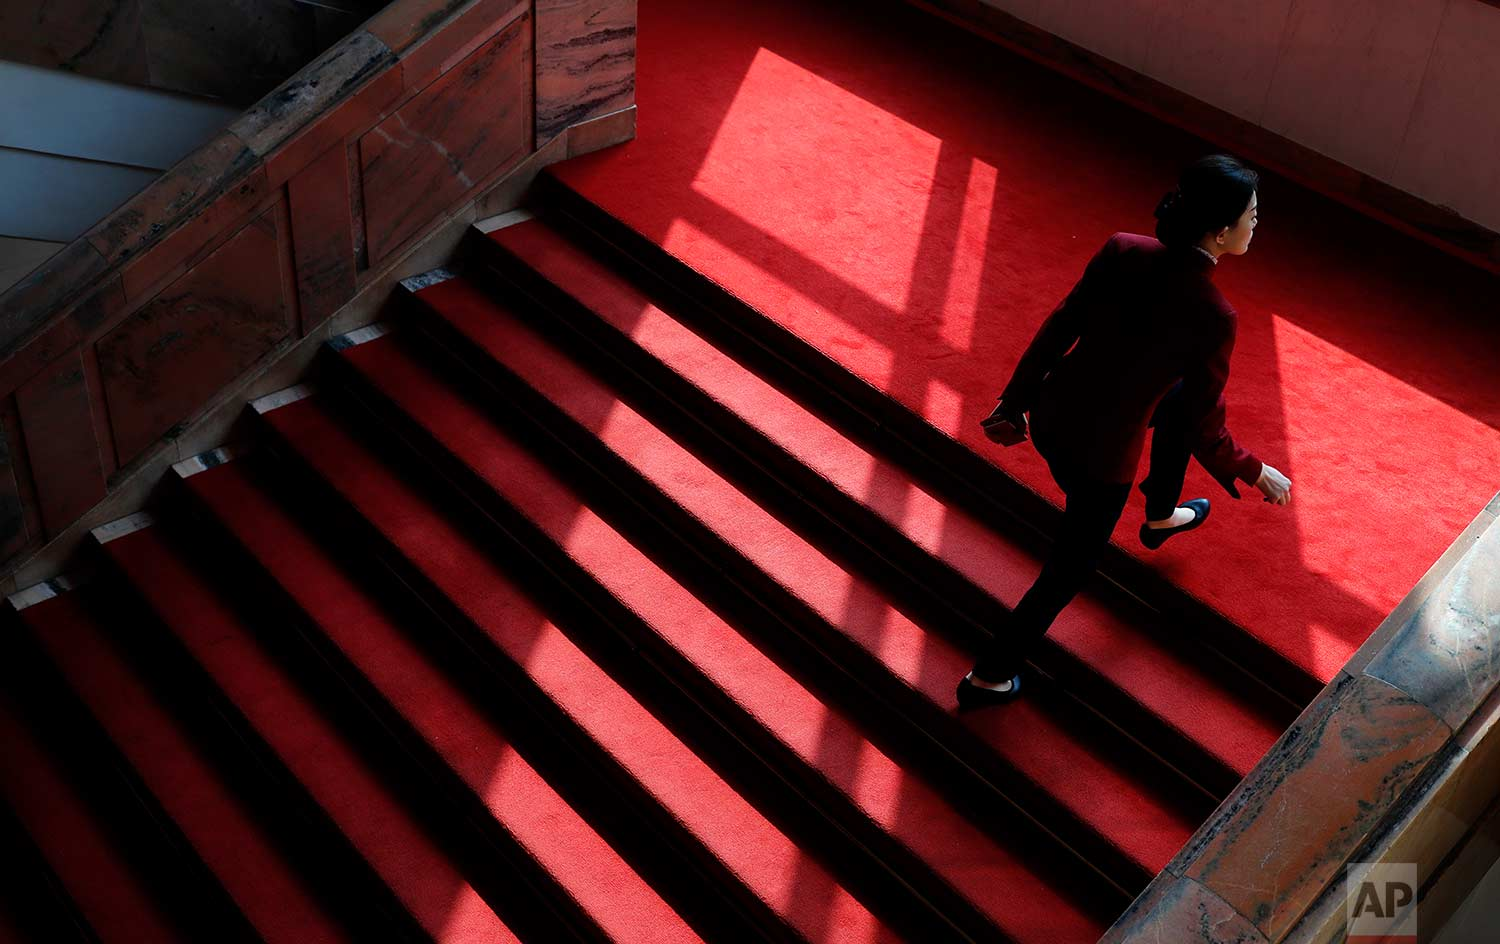 In this Tuesday, March 13, 2018 photo, an attendant climbs stairs covered with red carpet during a plenary session of China's National People's Congress (NPC) at the Great Hall of People in Beijing. (AP Photo/Aijaz Rahi)